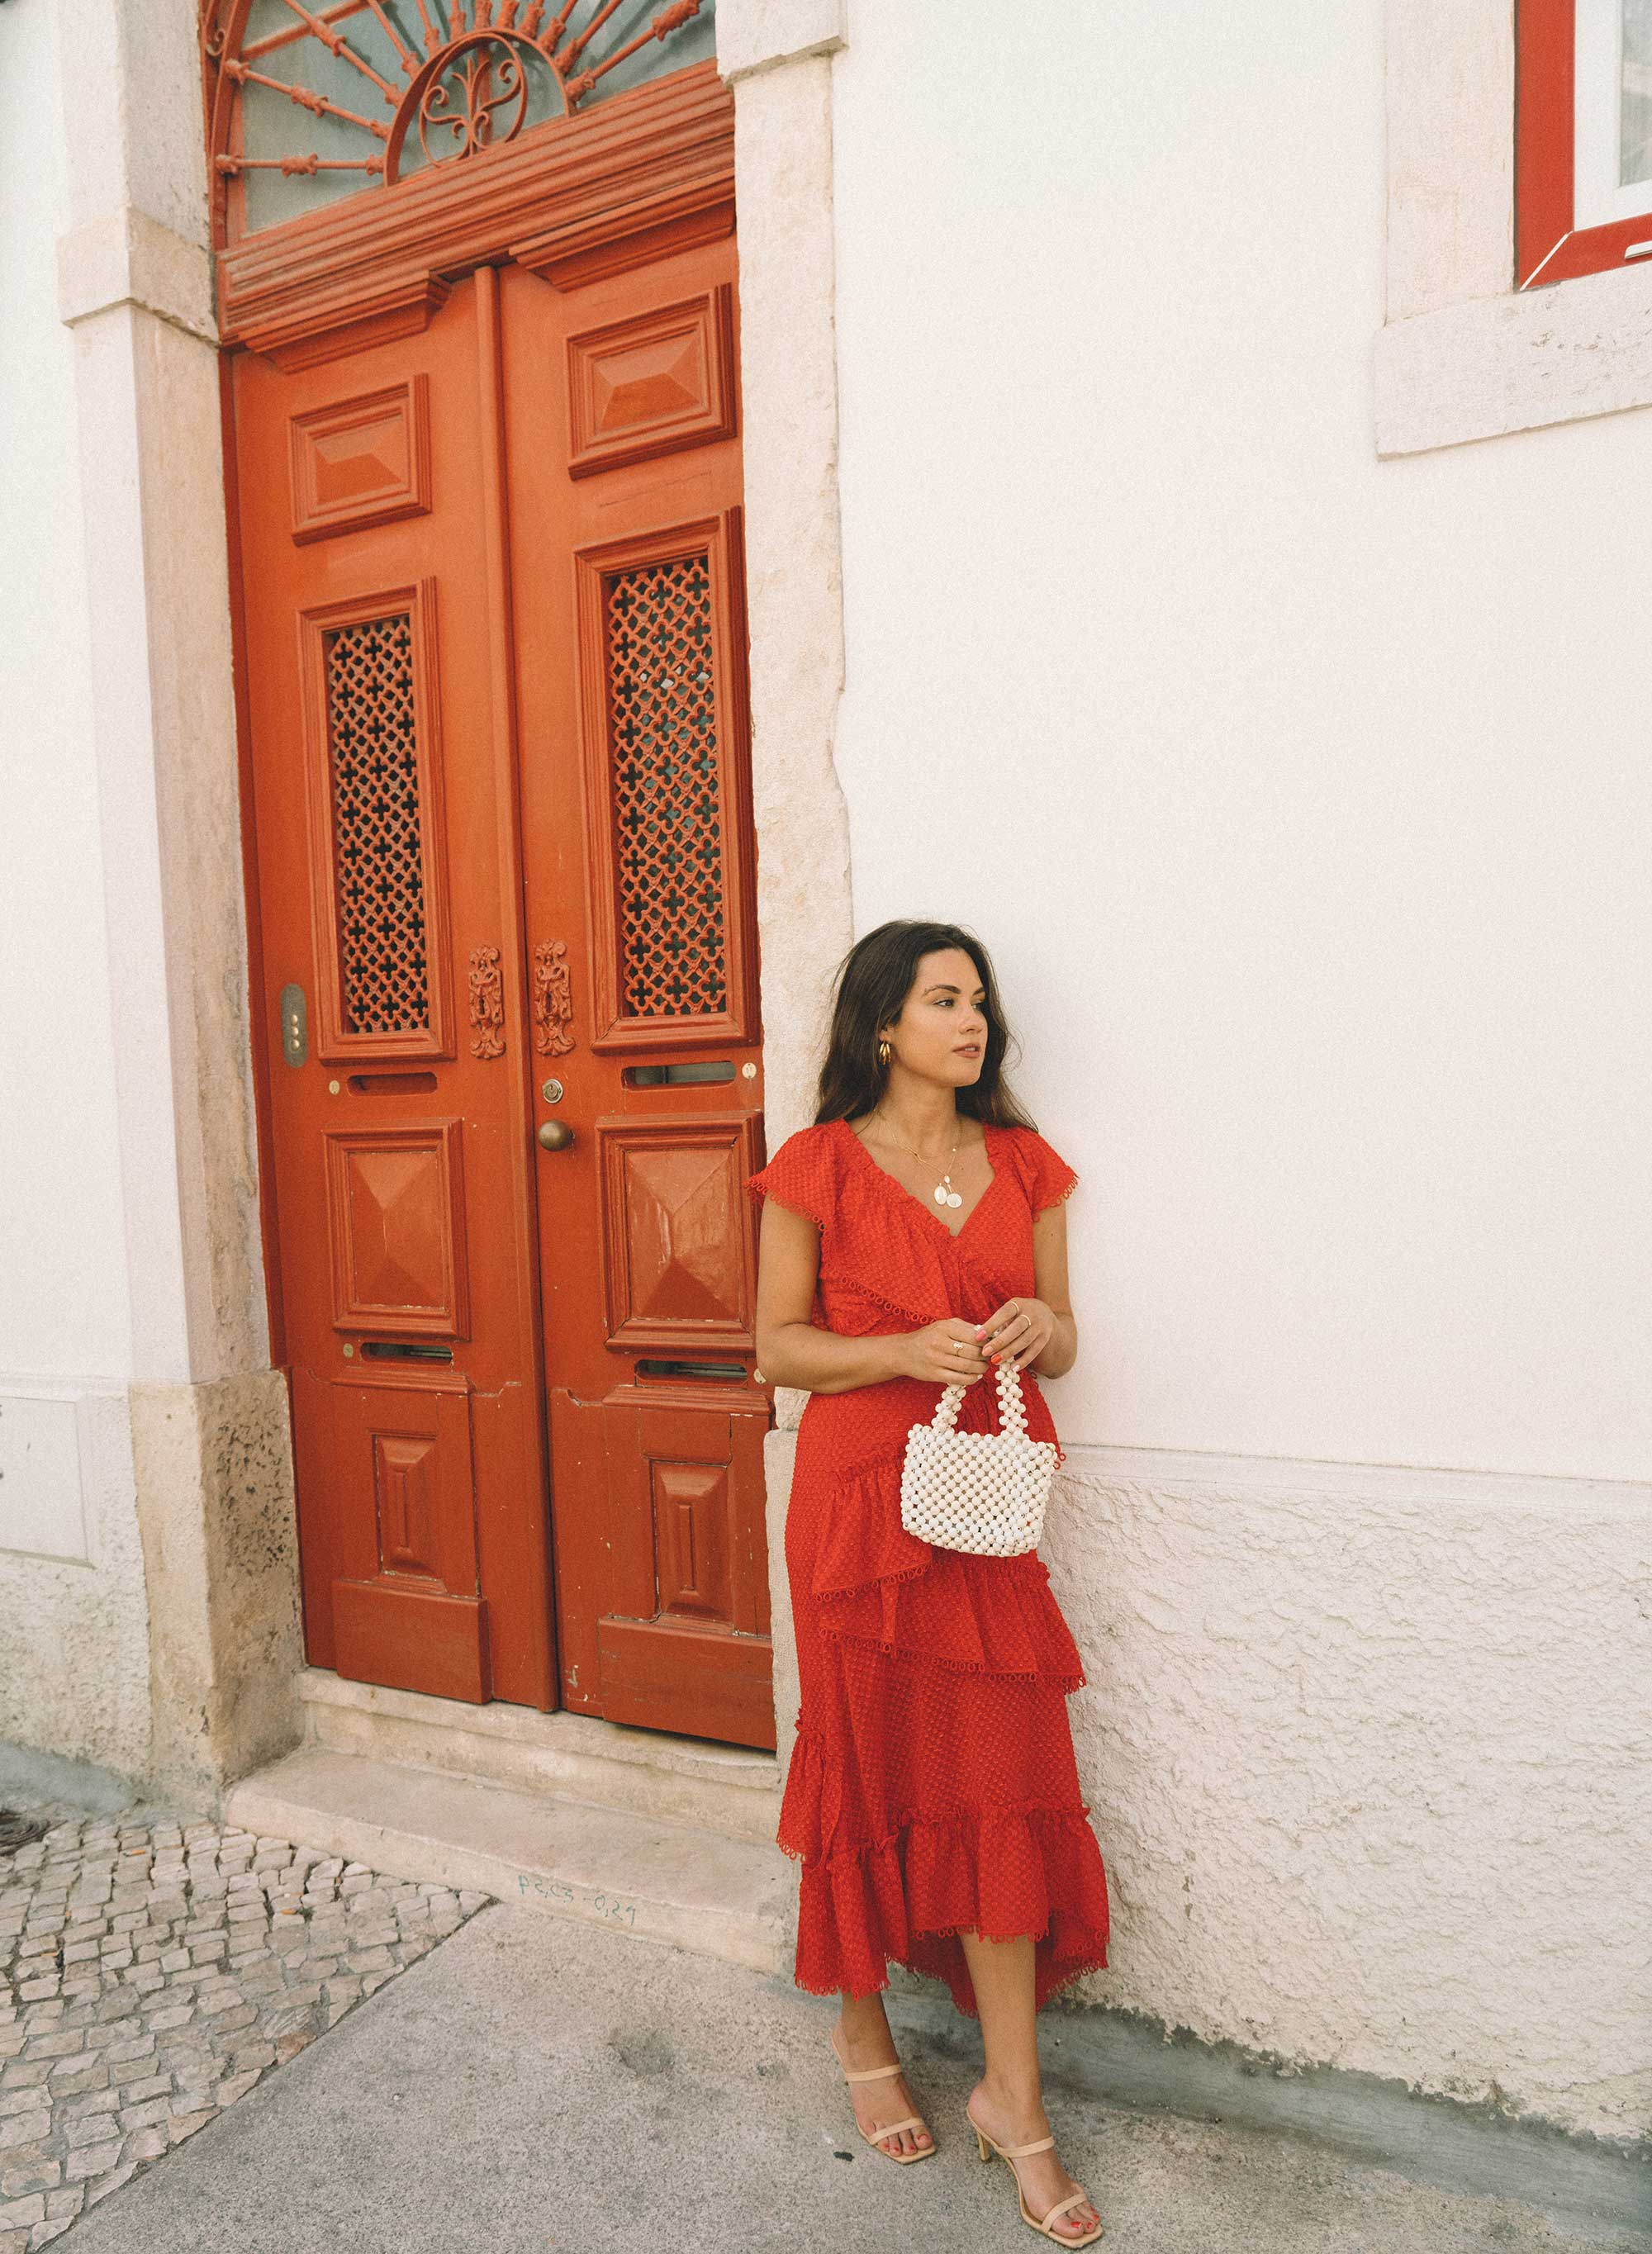 Afternoon in Lisbon - A beautiful afternoon in Lisbon, Portugal wearing Three Floor rouge tiered midi dress constructed with layered ruffles and an asymmetric hemline and Jagger two strap leather heel.